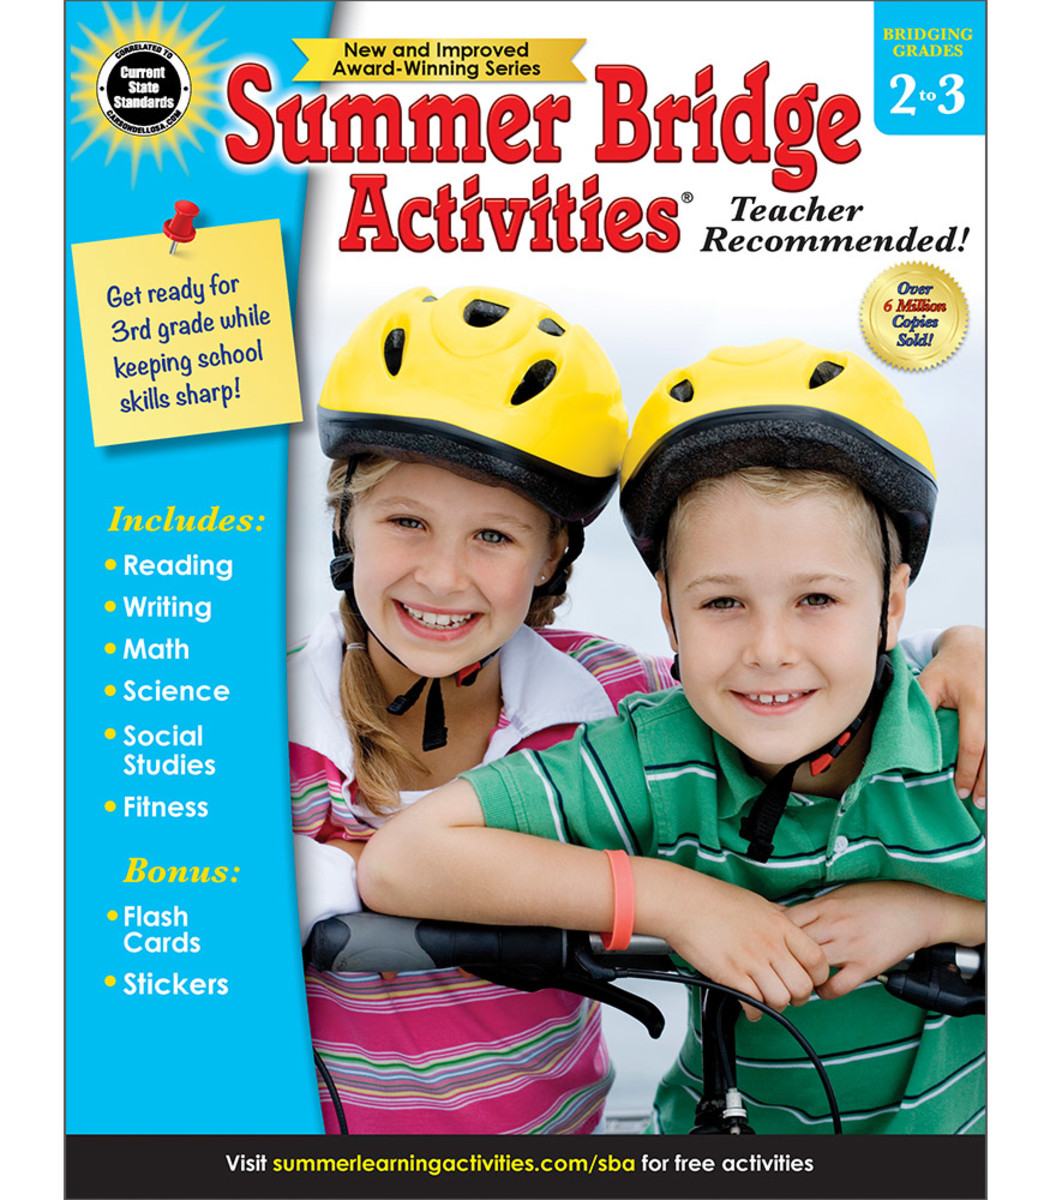 Six Reasons Why You Should Use Summer Bridge Activities With Your Kids